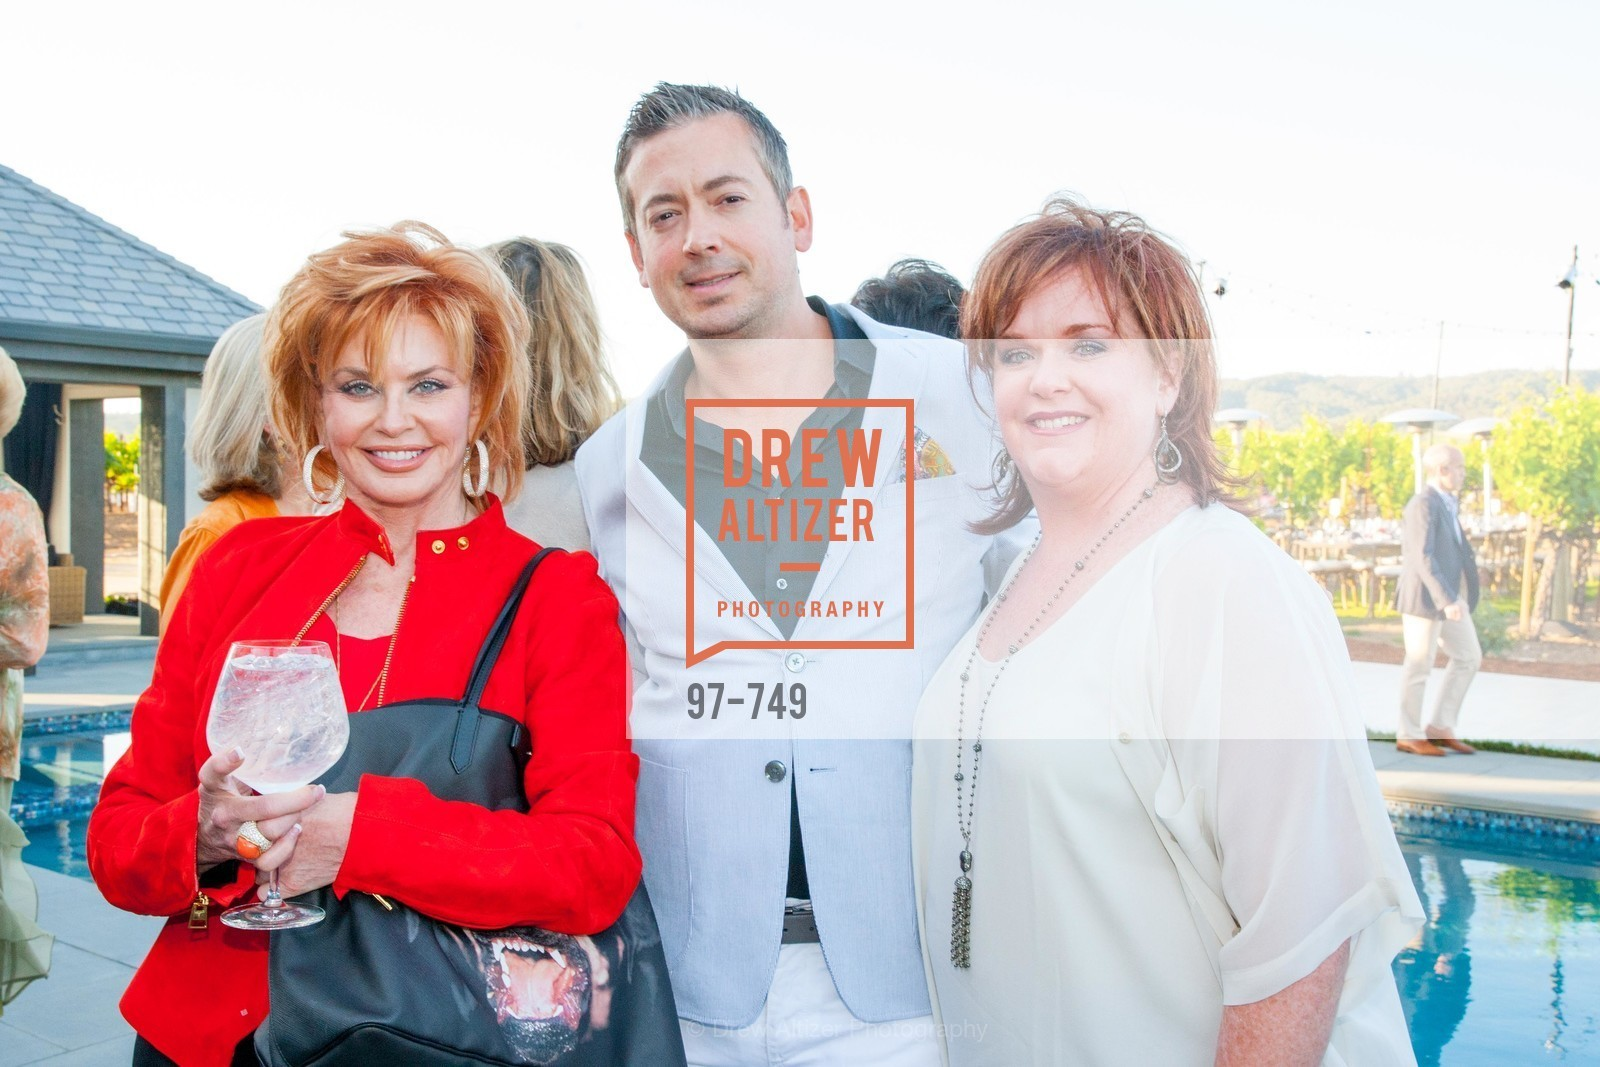 Vicky Walters, Chris Stubstad, Wendy Walters, PETER COPPING Meets and Greets OSCAR DELA RENTA Clients and Associates at NEIMAN MARCUS, US, May 23rd, 2015,Drew Altizer, Drew Altizer Photography, full-service agency, private events, San Francisco photographer, photographer california